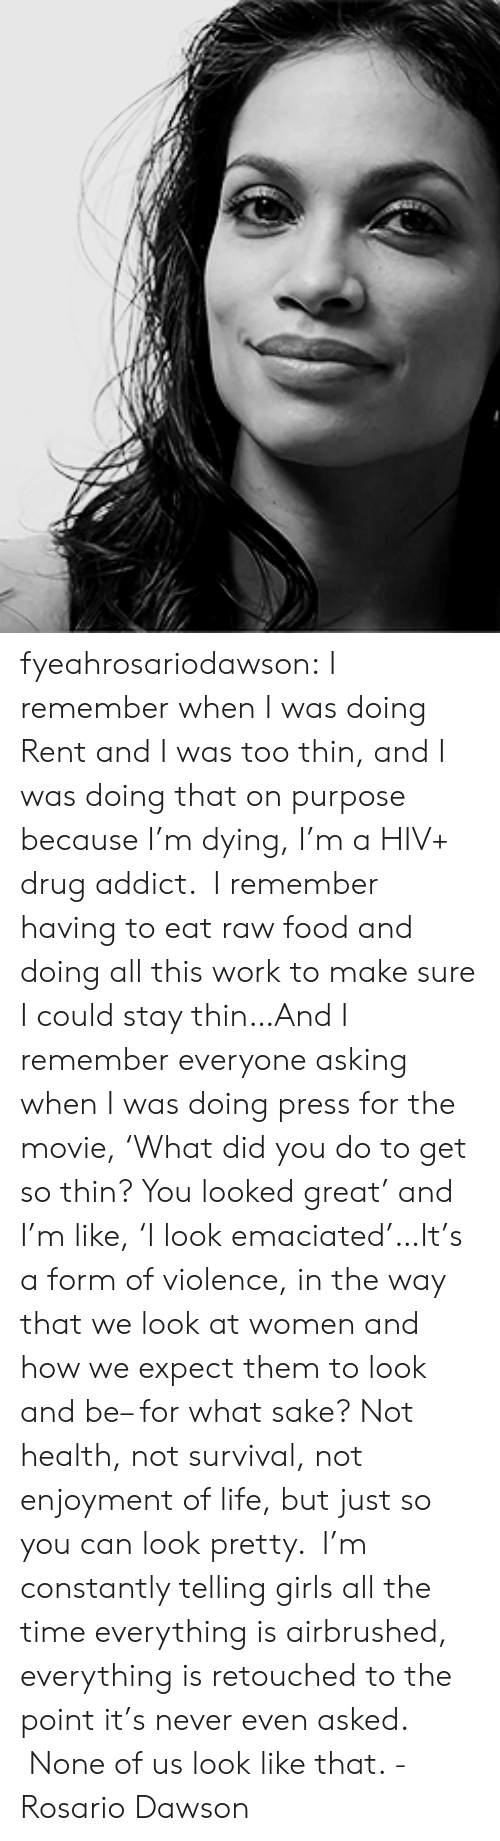 Food, Girls, and Life: fyeahrosariodawson:  I remember when I was doing Rent and I was too thin, and I was doing that on purpose because I'm dying, I'm a HIV+ drug addict. I remember having to eat raw food and doing all this work to make sure I could stay thin…And I remember everyone asking when I was doing press for the movie,'What did you do to get so thin? You looked great' and I'm like,'I look emaciated'…It's a form of violence, in the way that we look at women and how we expect them to look and be– for what sake? Not health, not survival, not enjoyment of life, but just so you can look pretty. I'm constantly telling girls all the time everything is airbrushed, everything is retouched to the point it's never even asked. None of us look like that. - Rosario Dawson